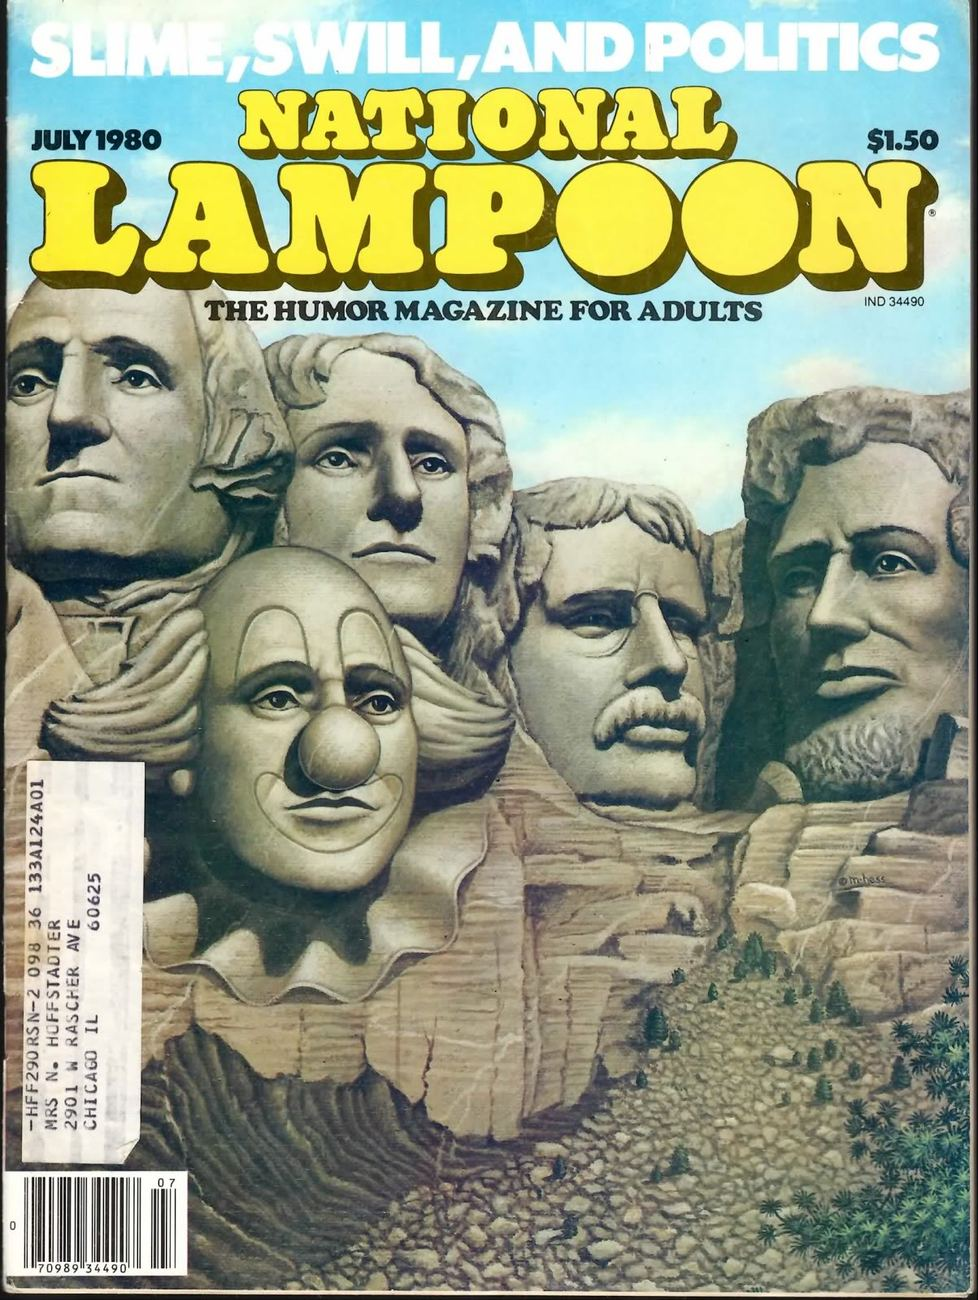 NATIONAL LAMPOON VOL 2 #24 JUL 1980 FINE  RARE